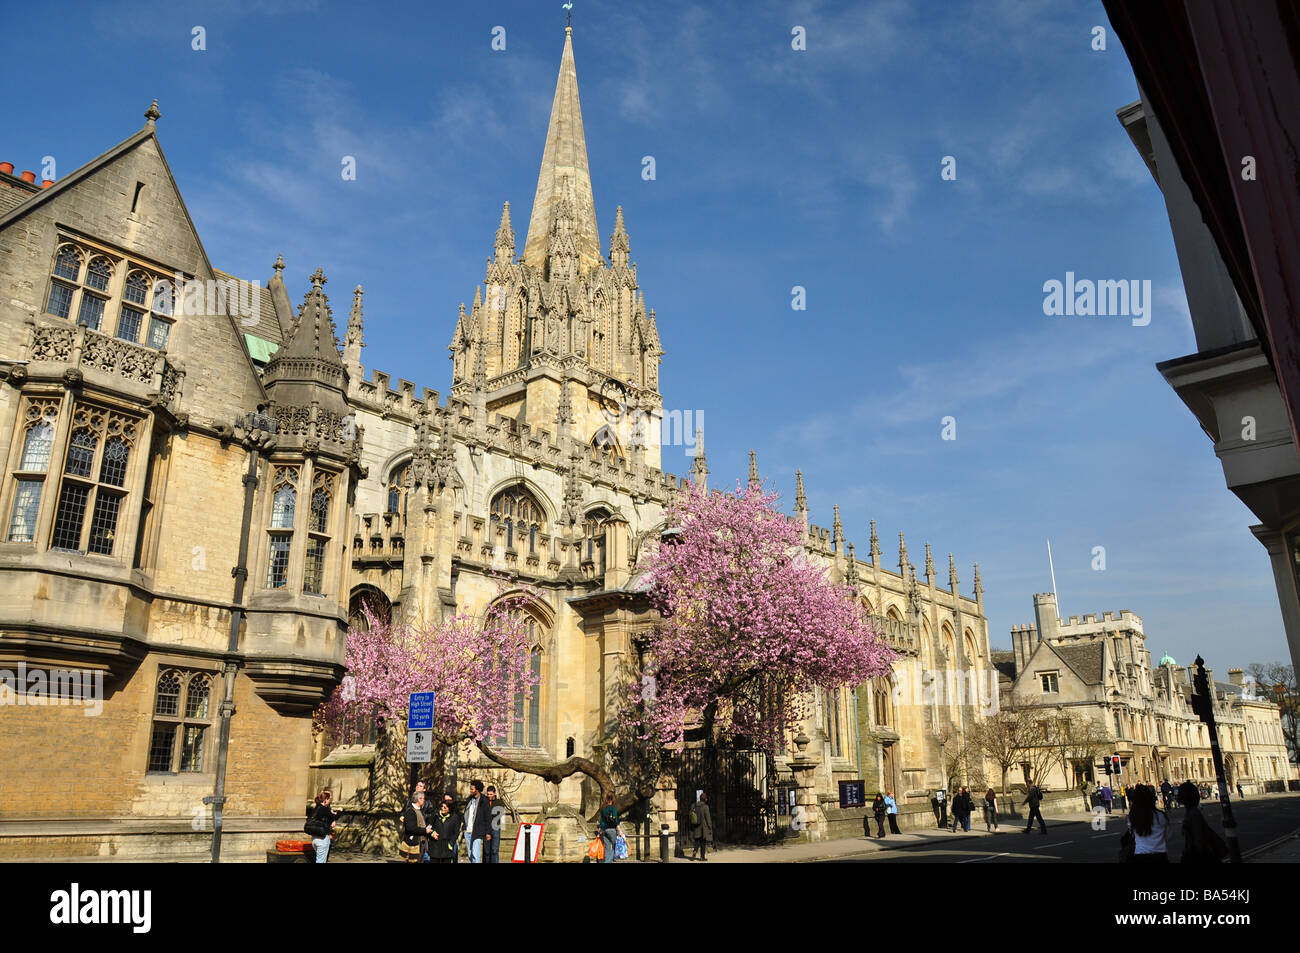 University Church of St. Mary The Virgin, Oxford - Stock Image